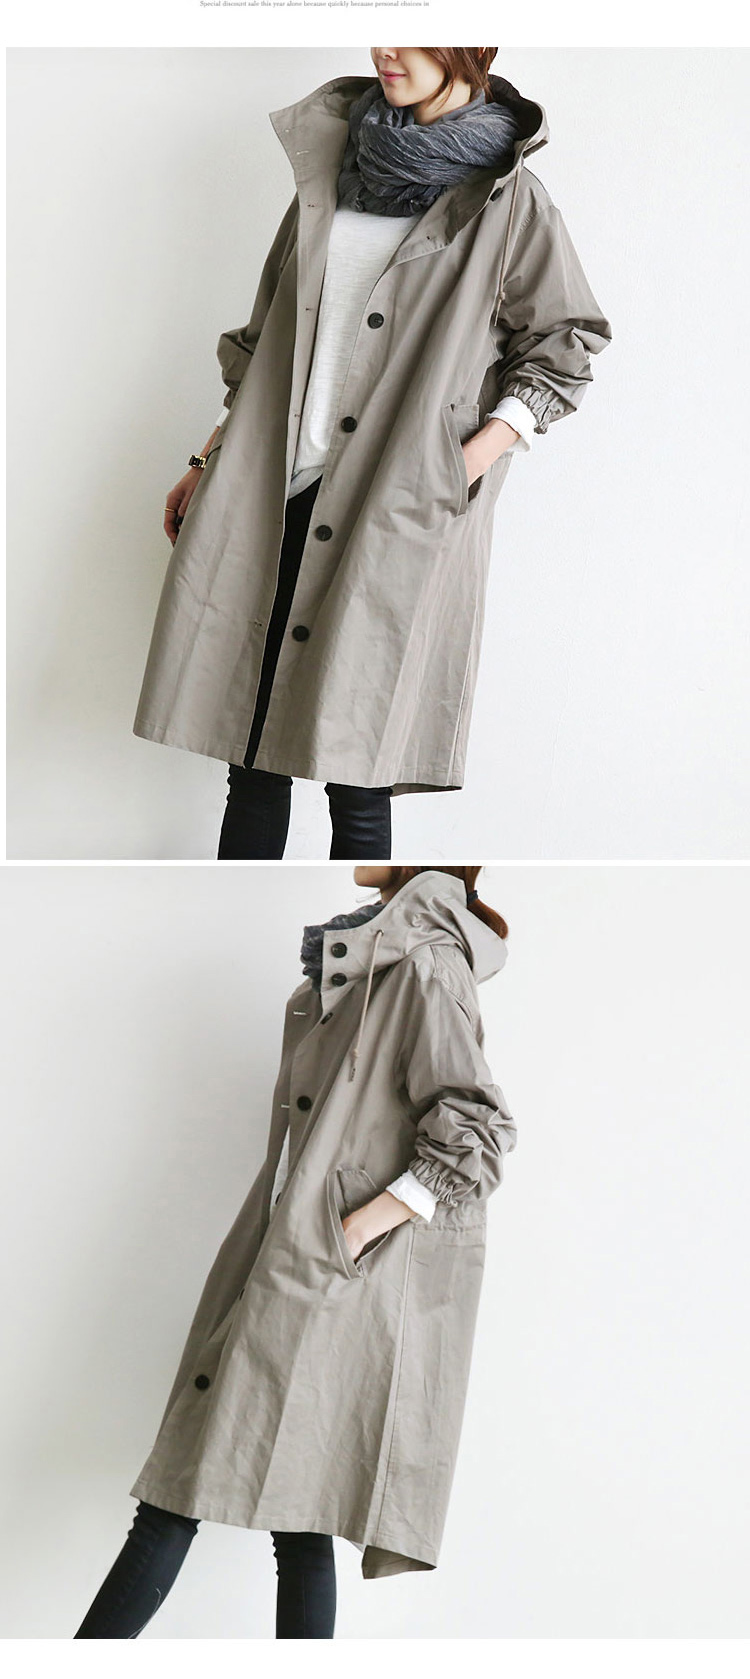 Cheap wholesale 19 new autumn winter Hot selling women's fashion netred casual Ladies work wear nice Jacket MW184 6